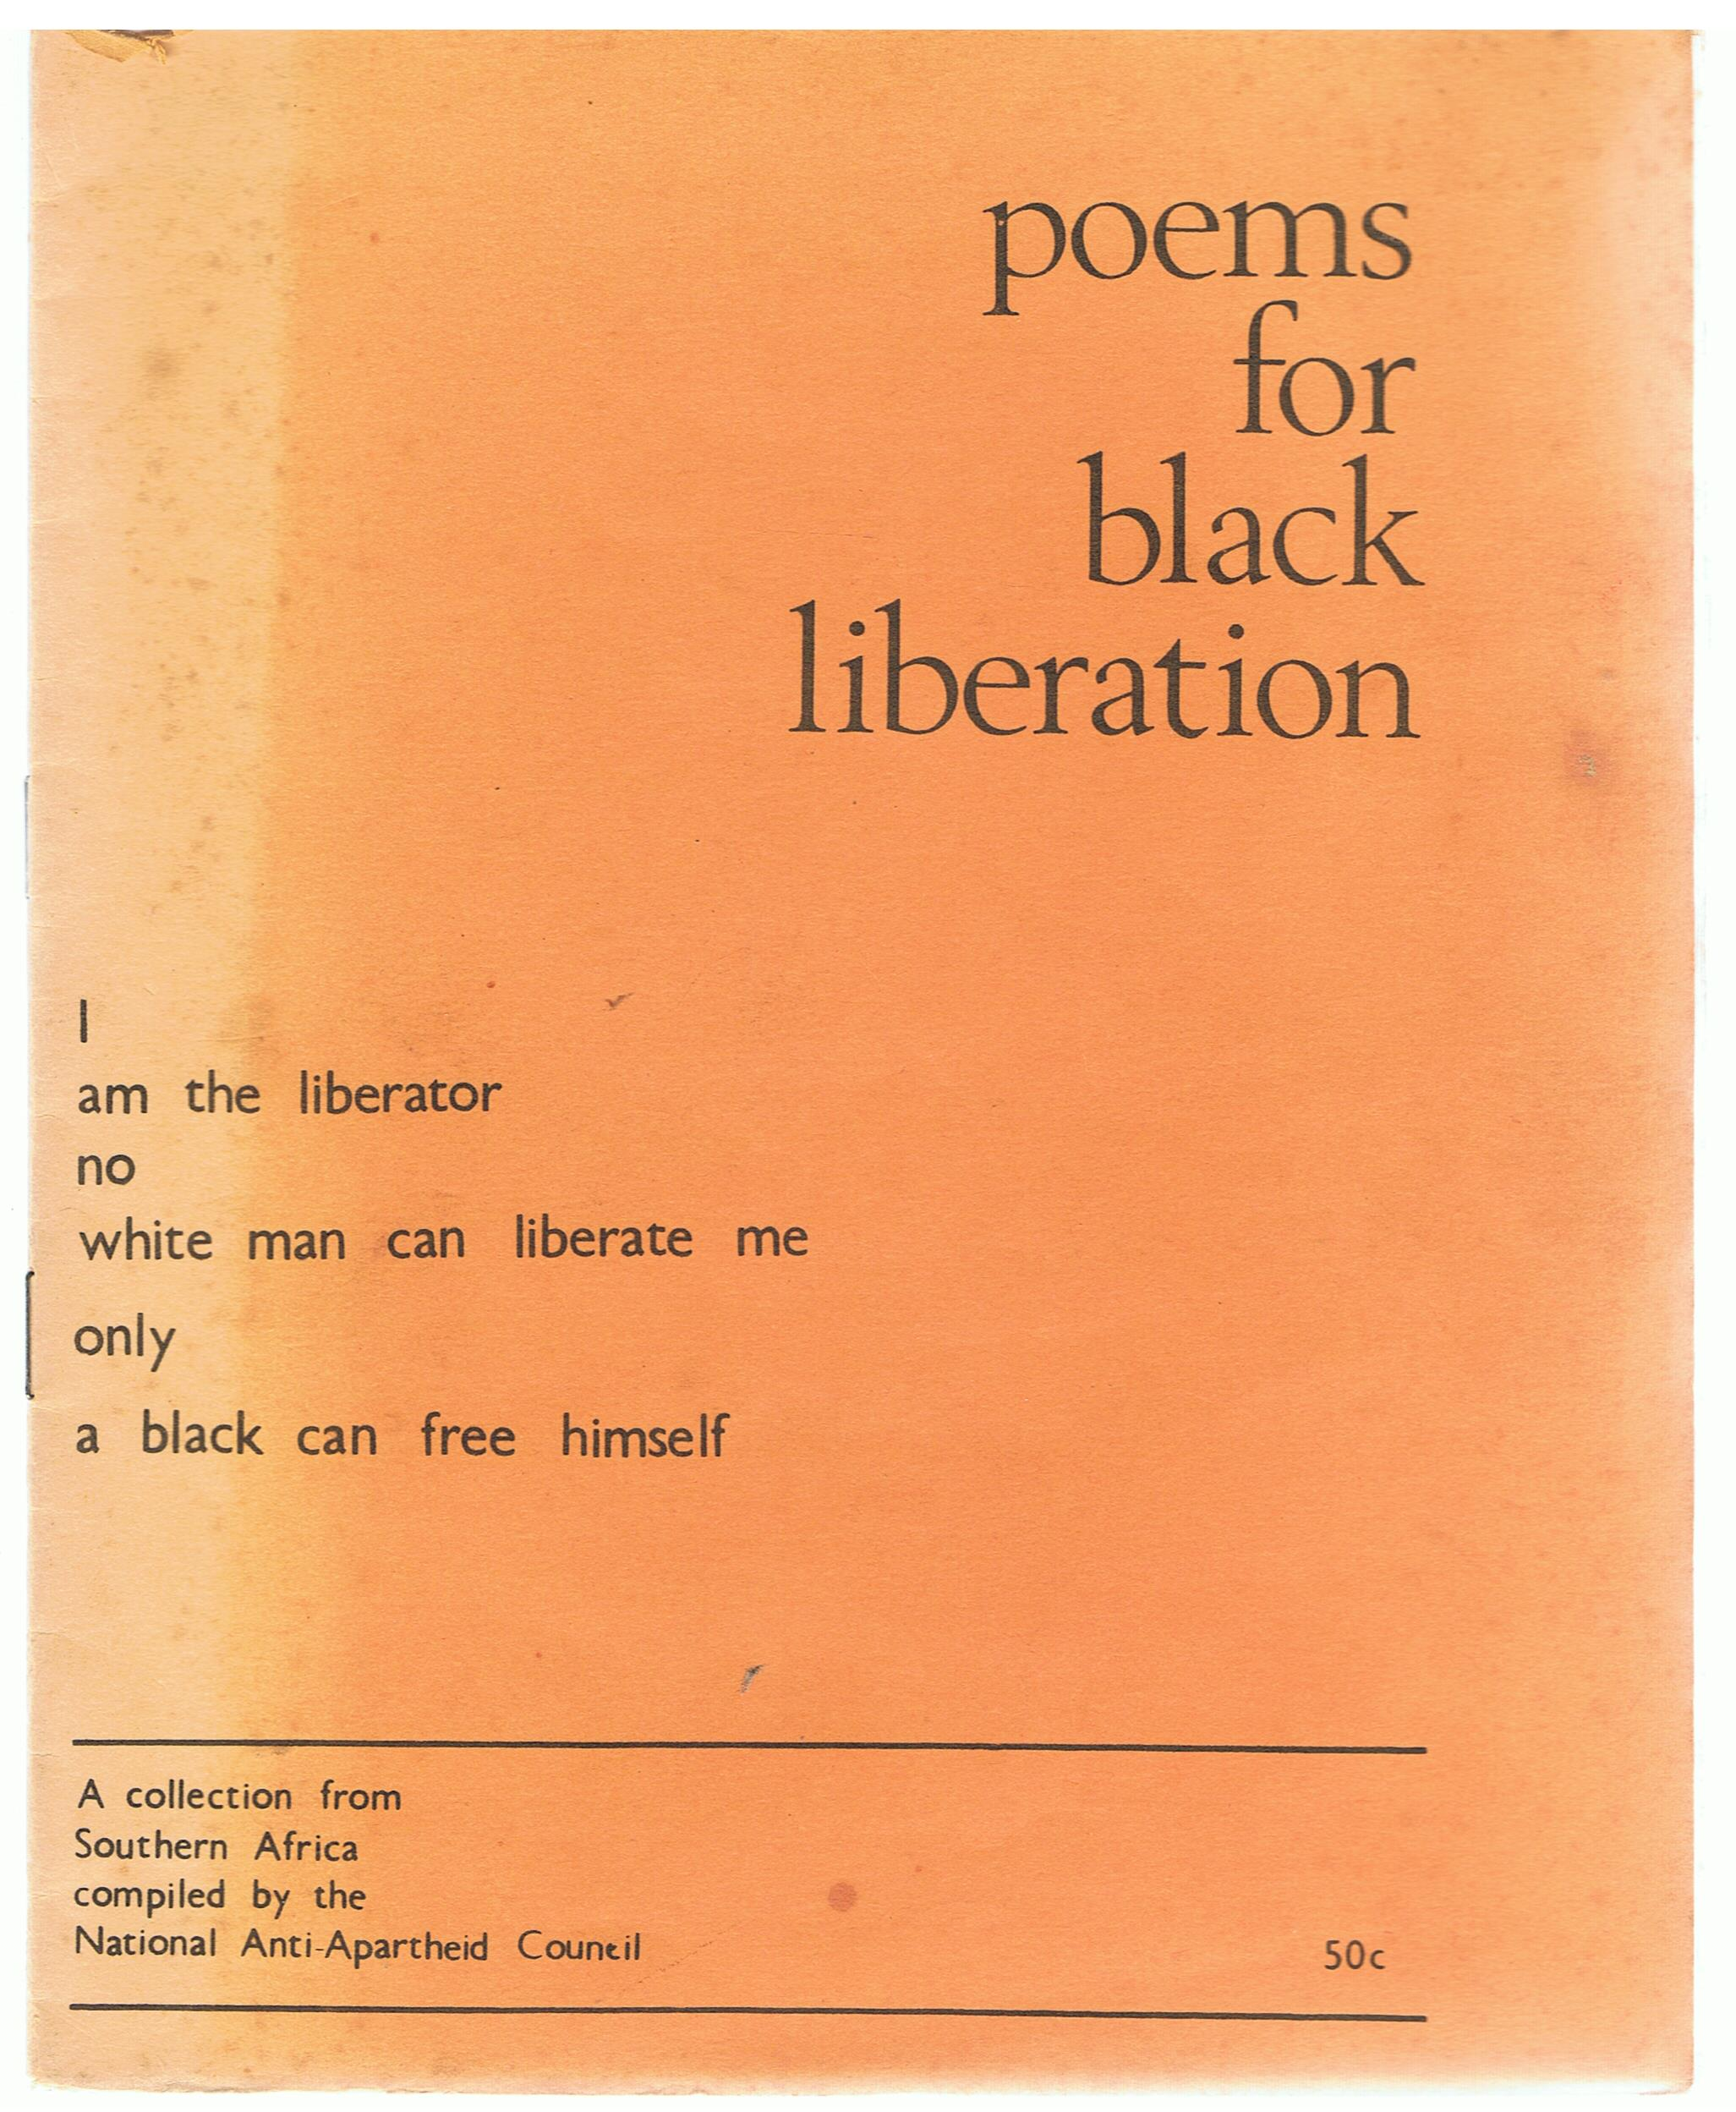 Image for Poems for Black Liberation. A Collection from Southern Africa compliled by the National Anti-Apartheid Council.